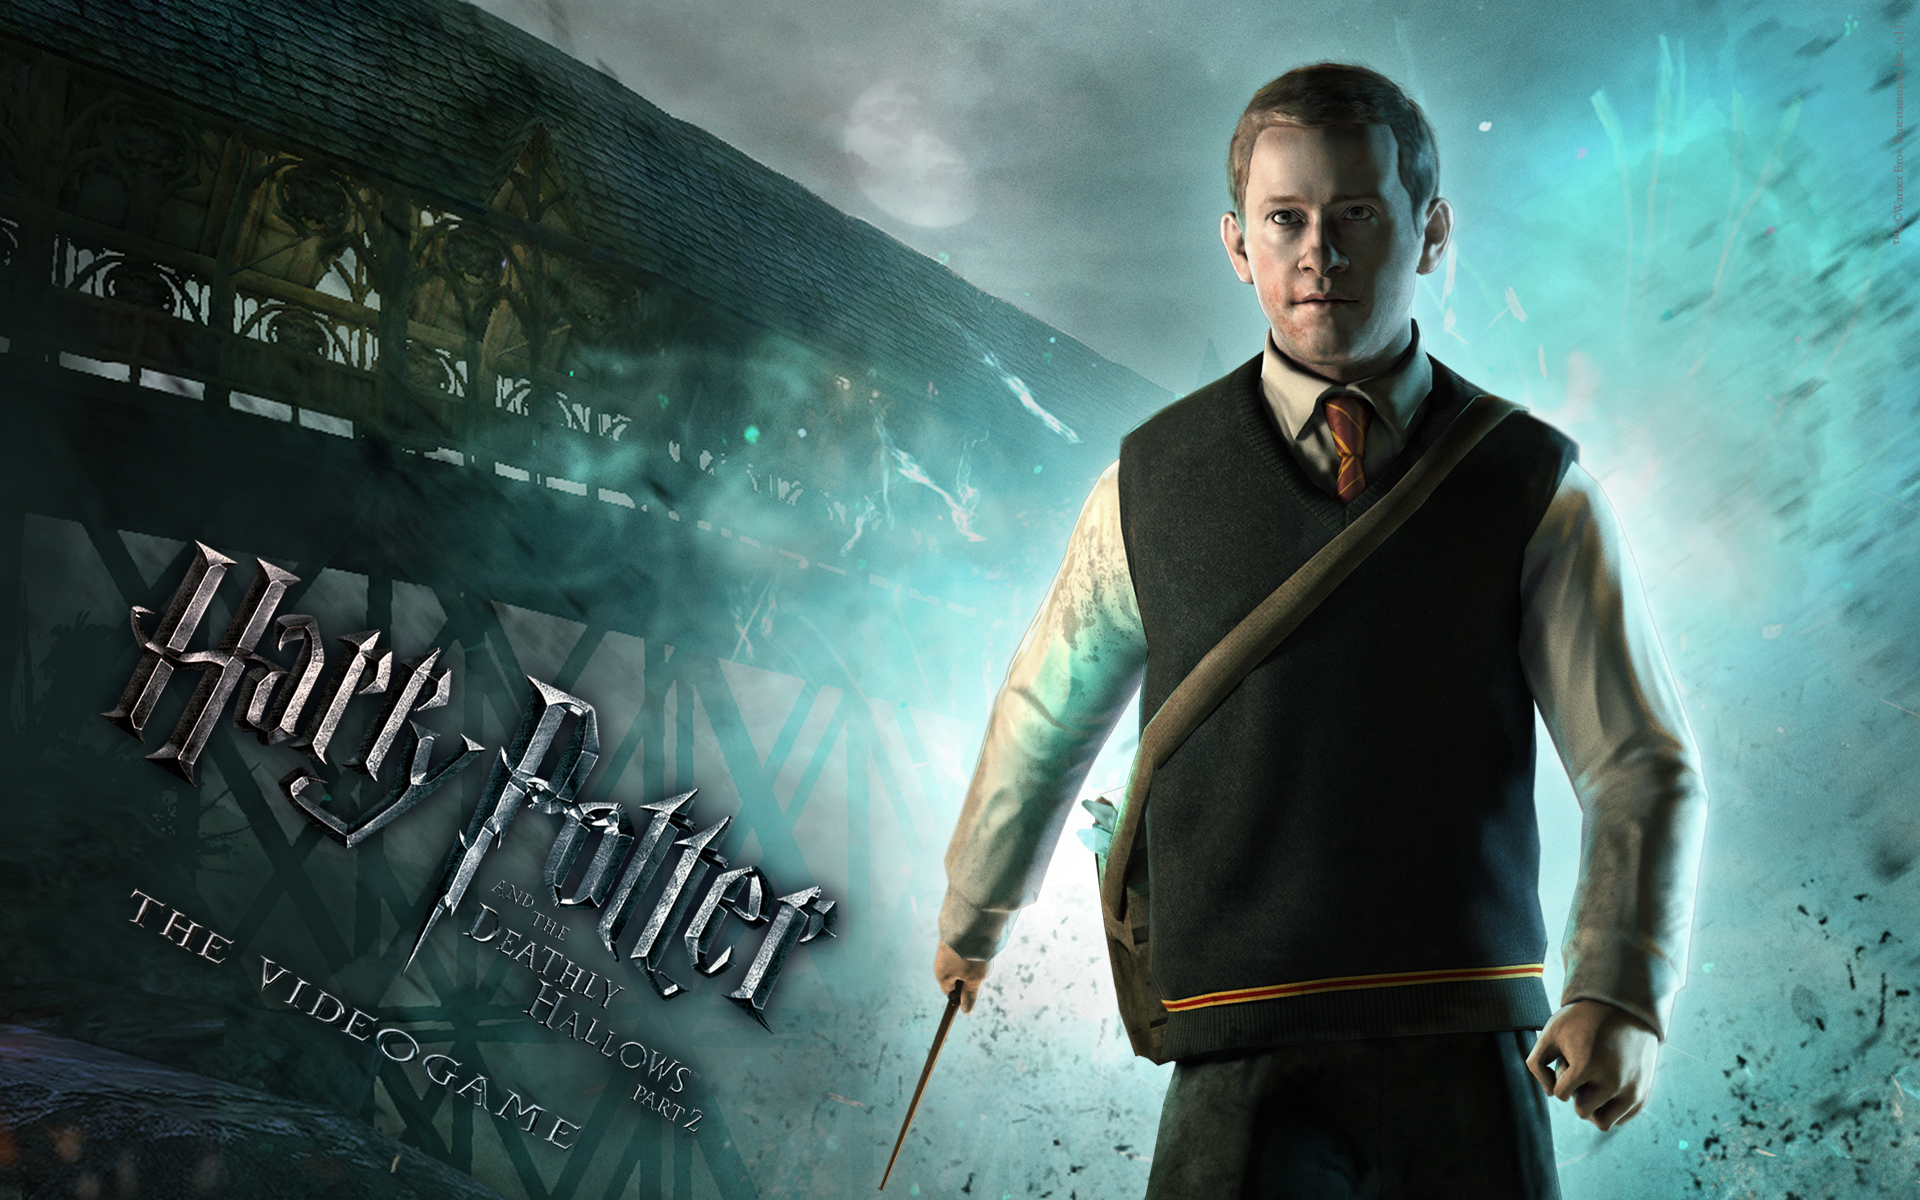 Seamus Wallpaper From Harry Potter And The Deathly Hallows Part 2